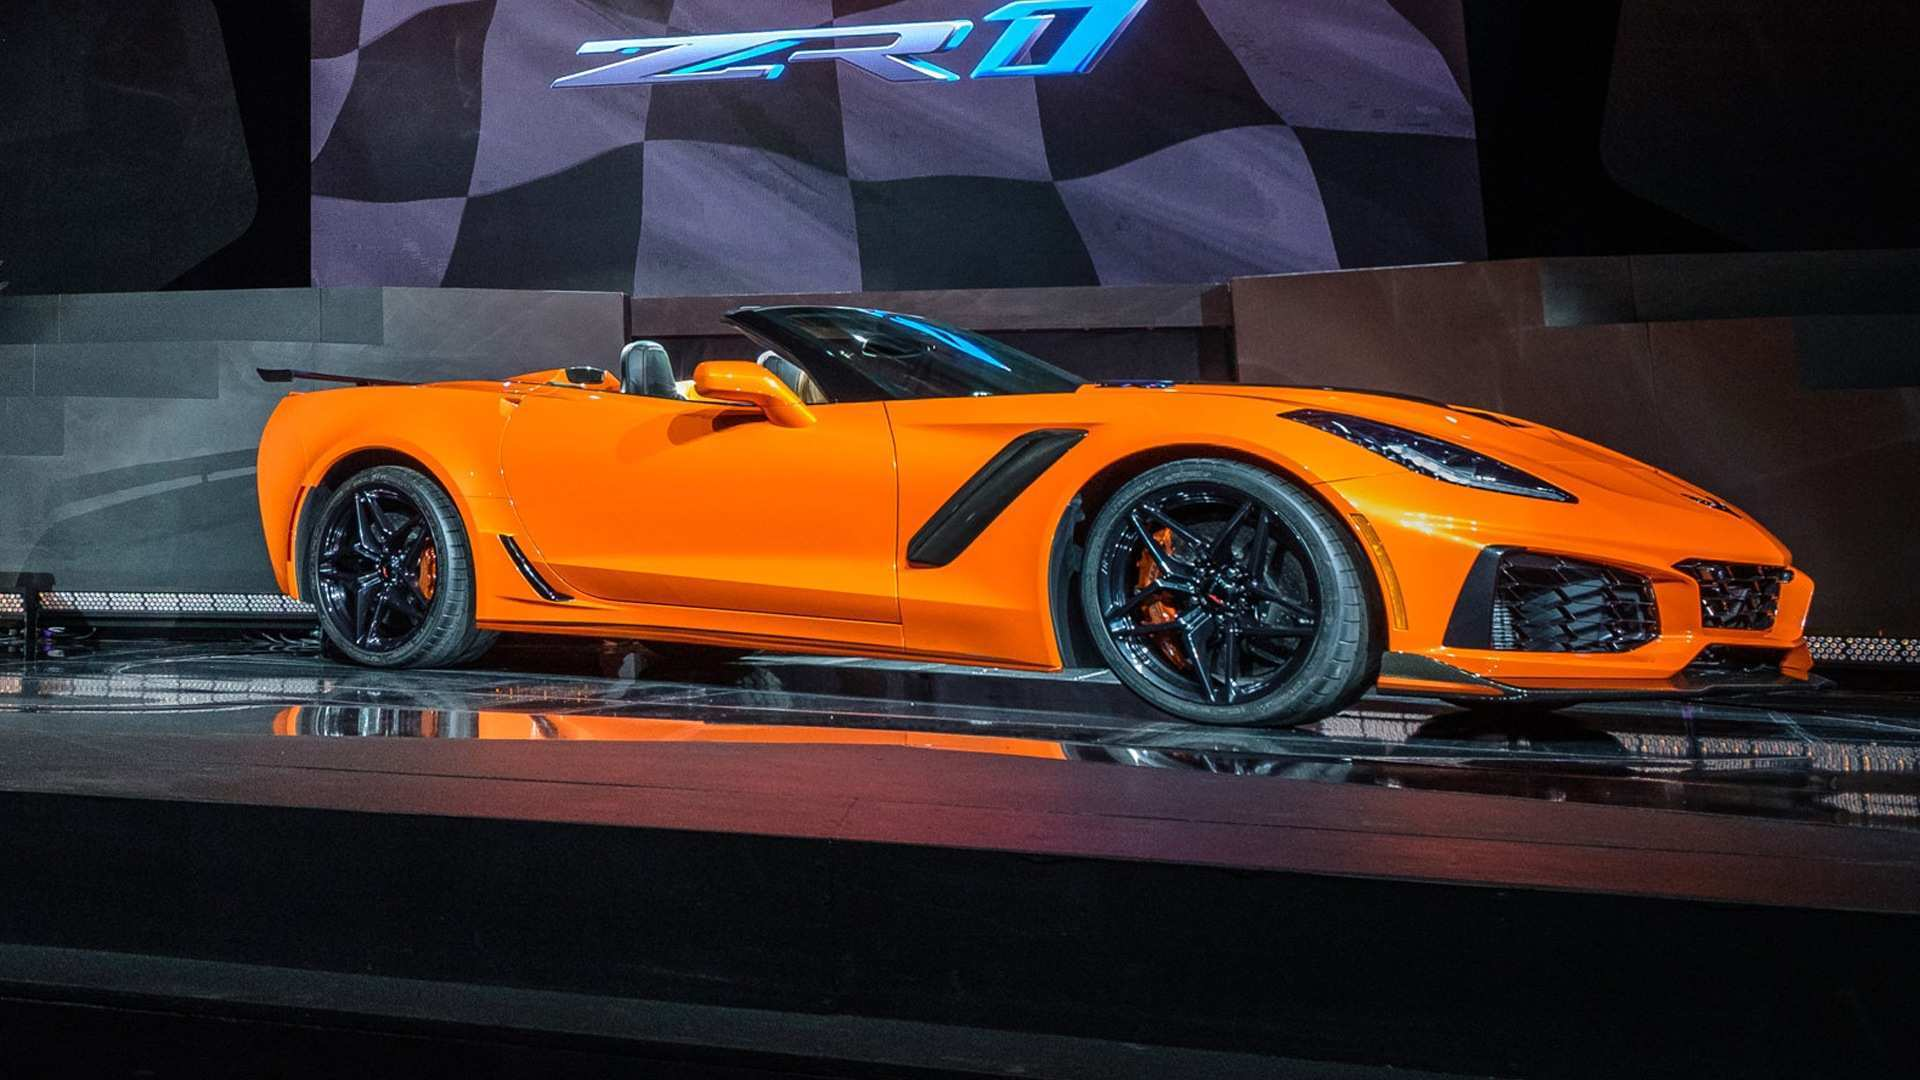 58 All New 2019 Chevrolet Corvette Zr1 Photos by 2019 Chevrolet Corvette Zr1